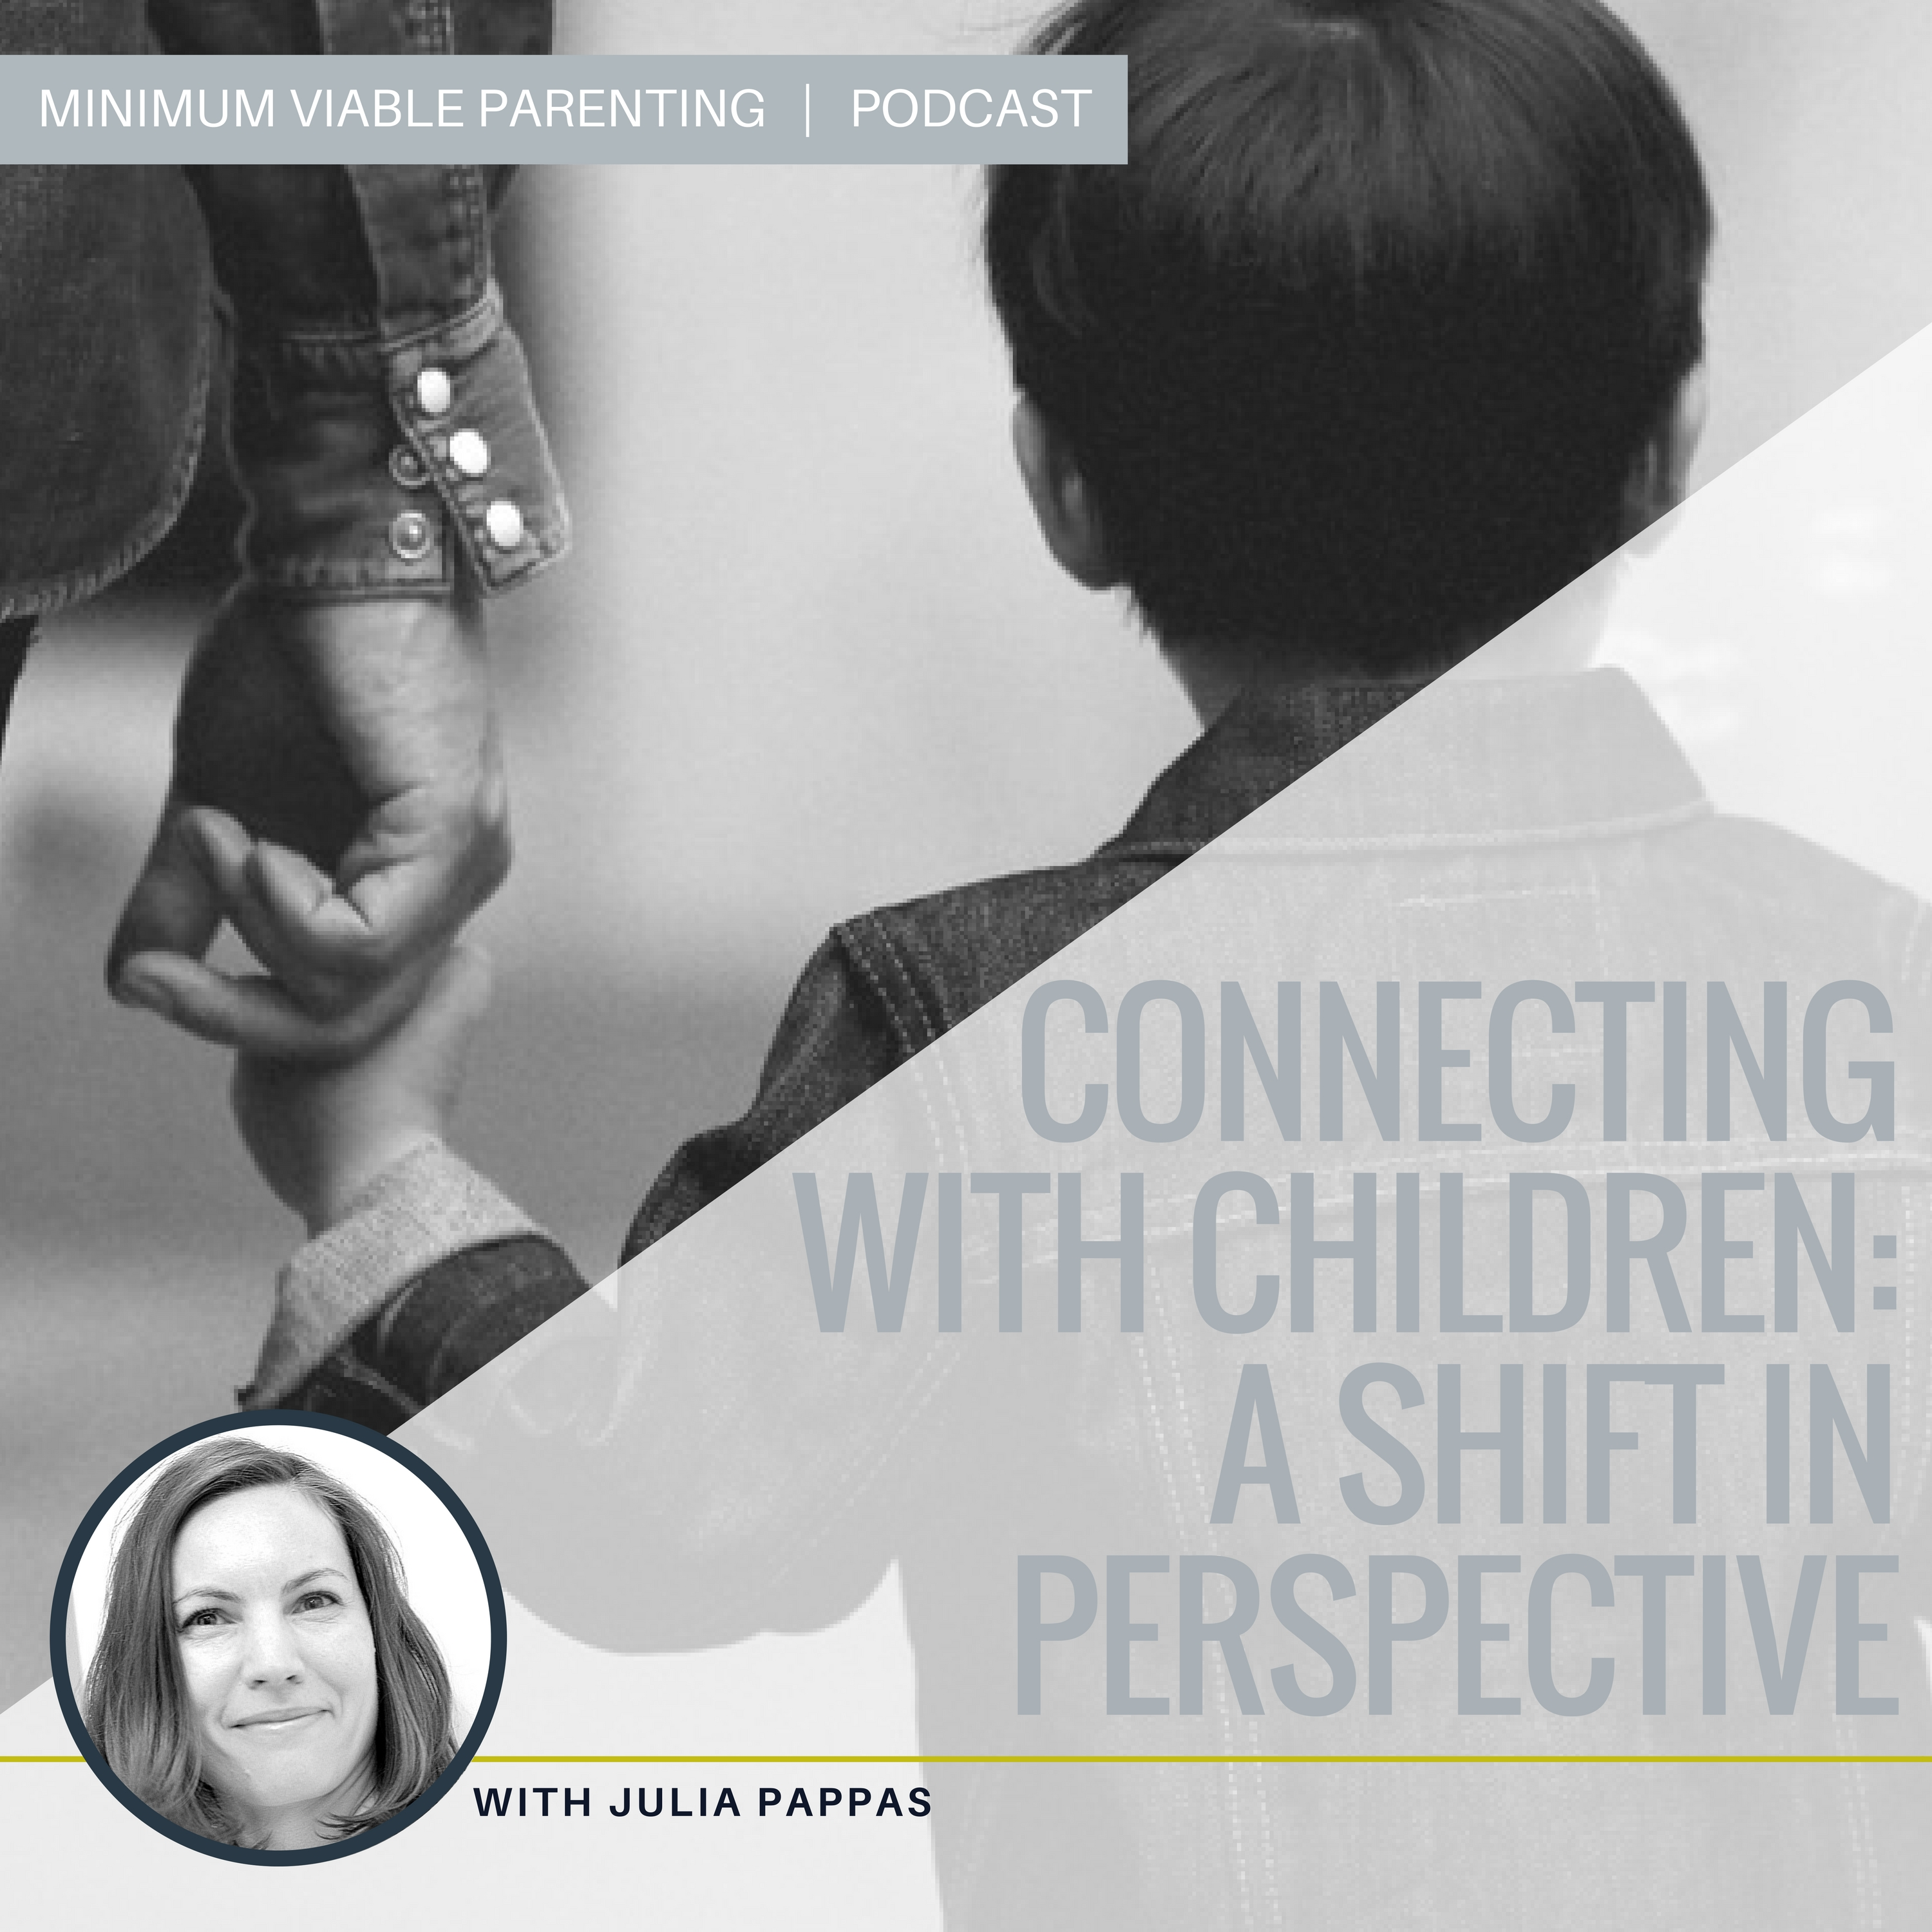 Episode #8: Connecting With Children - a Shift in Perspective